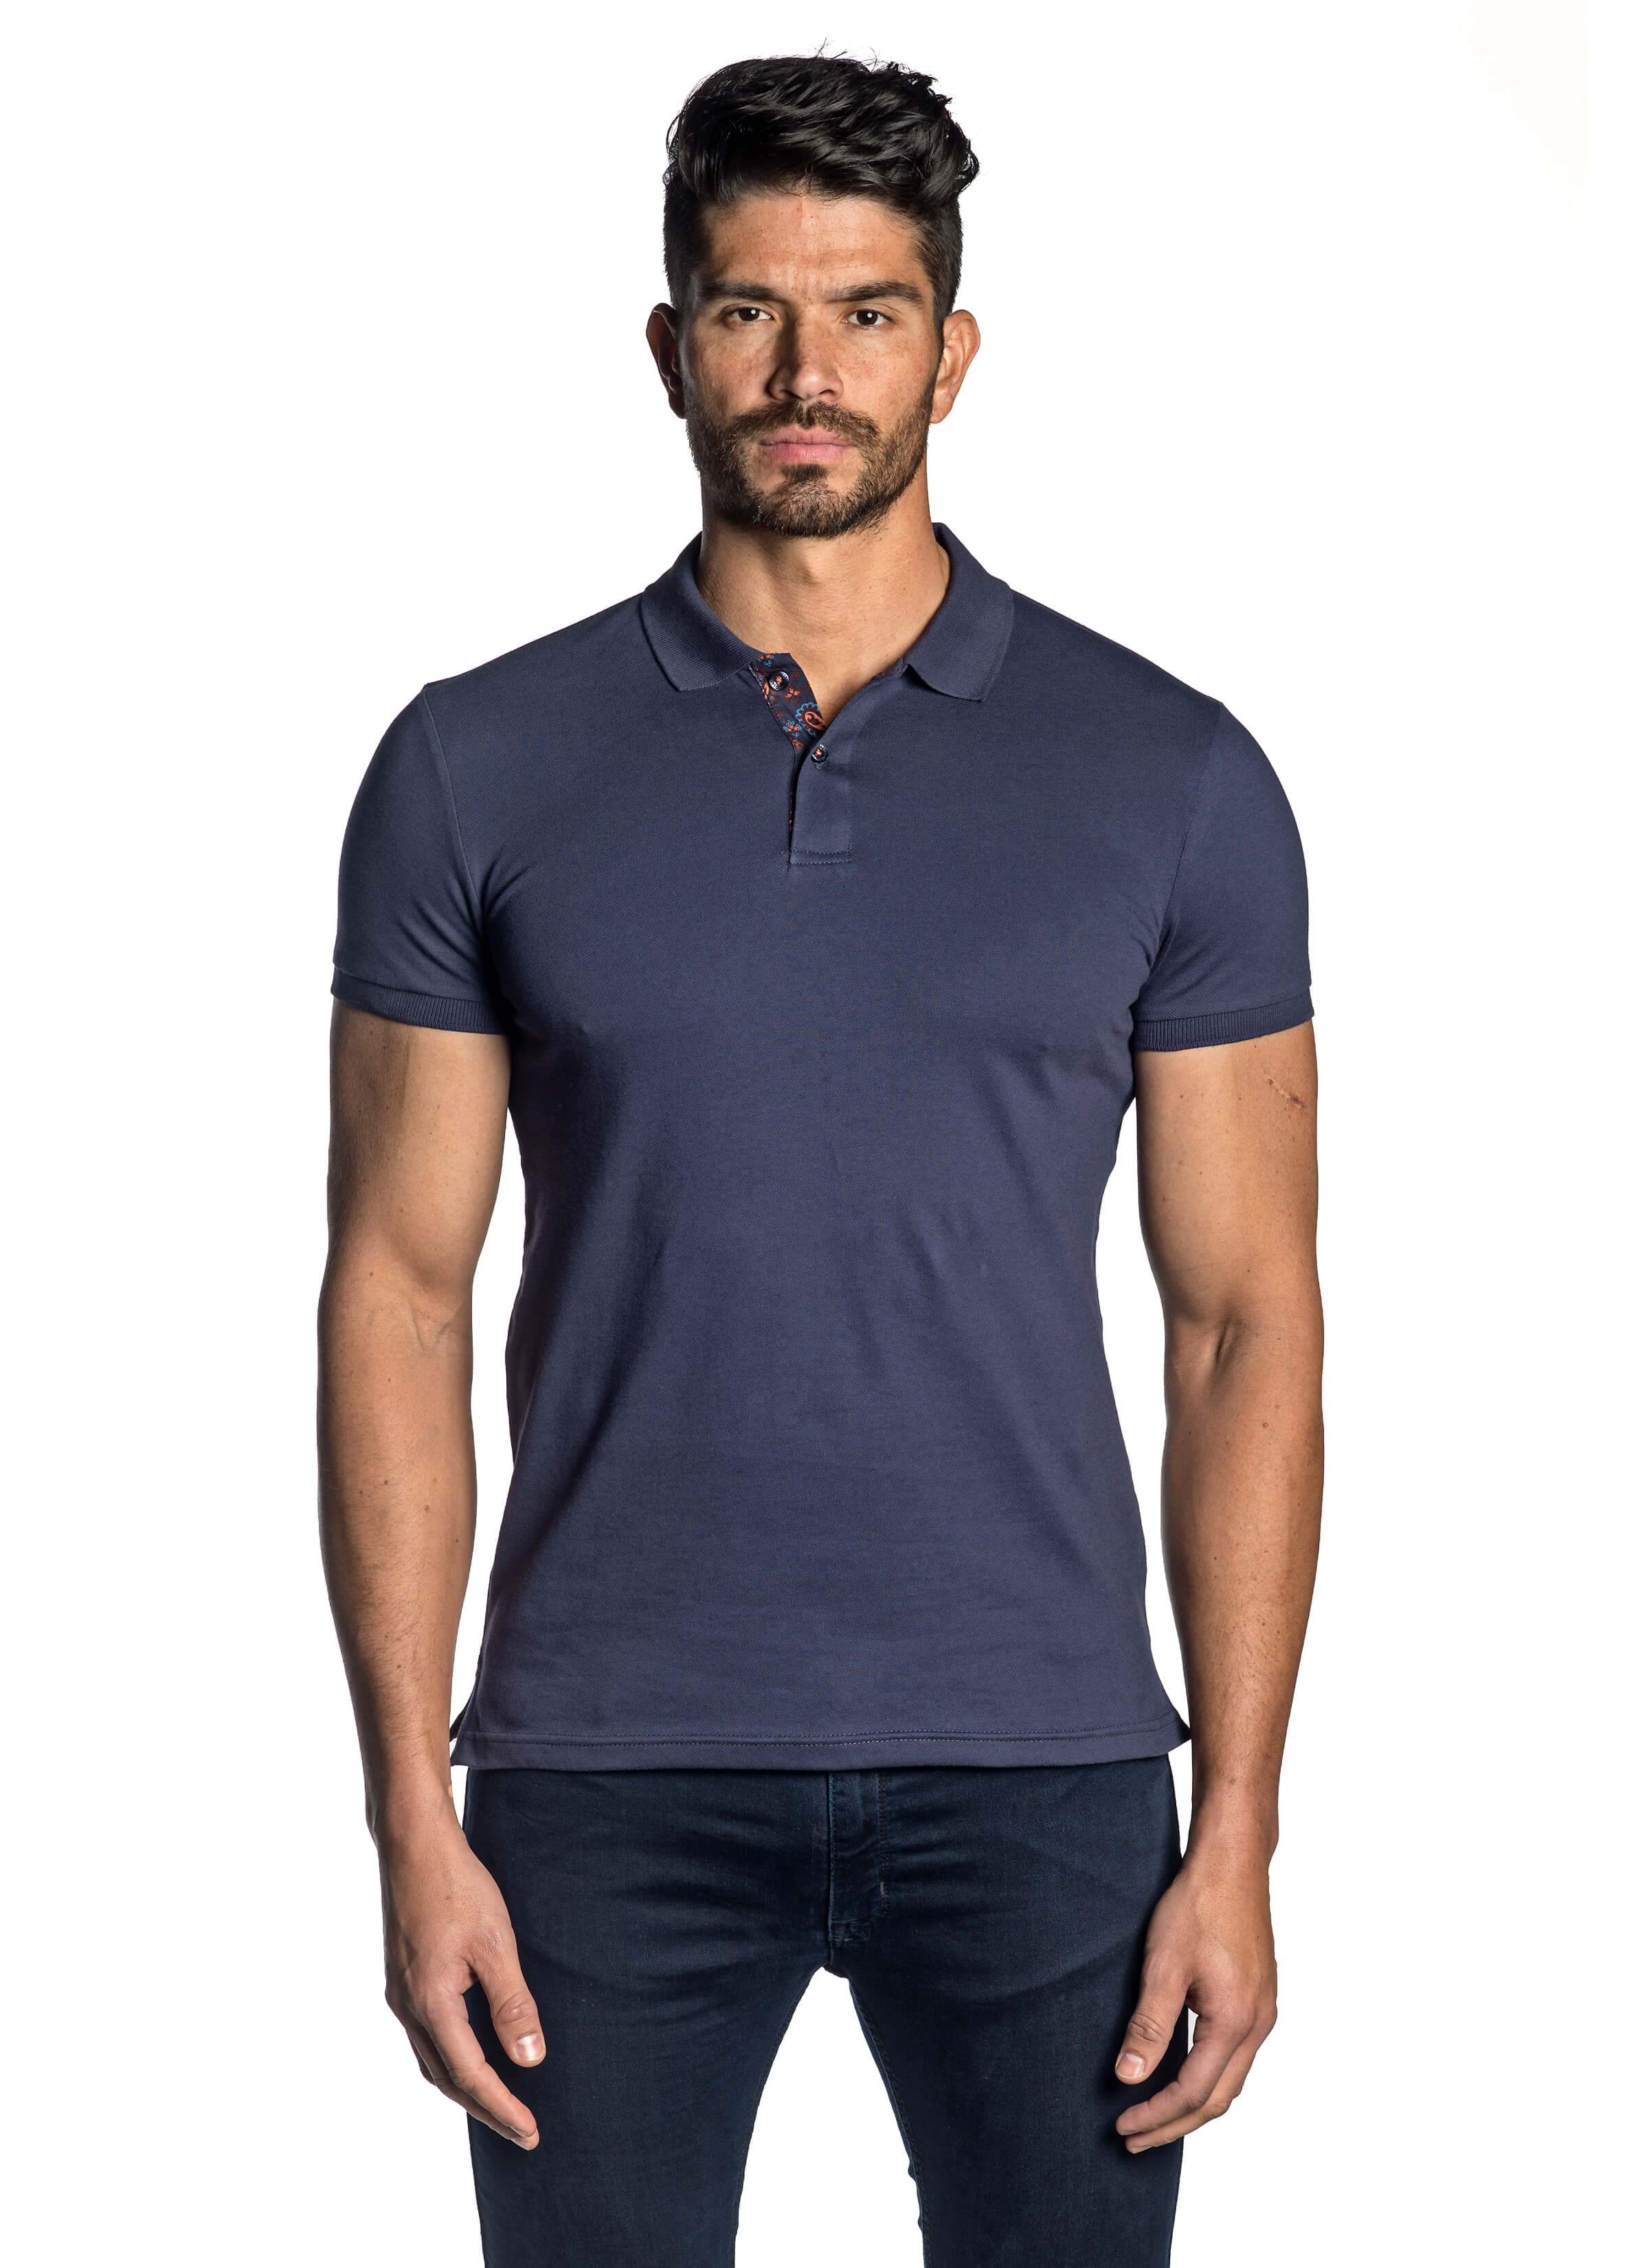 Navy Short Sleeve Polo for Men - front - PS-5008 - Jared Lang